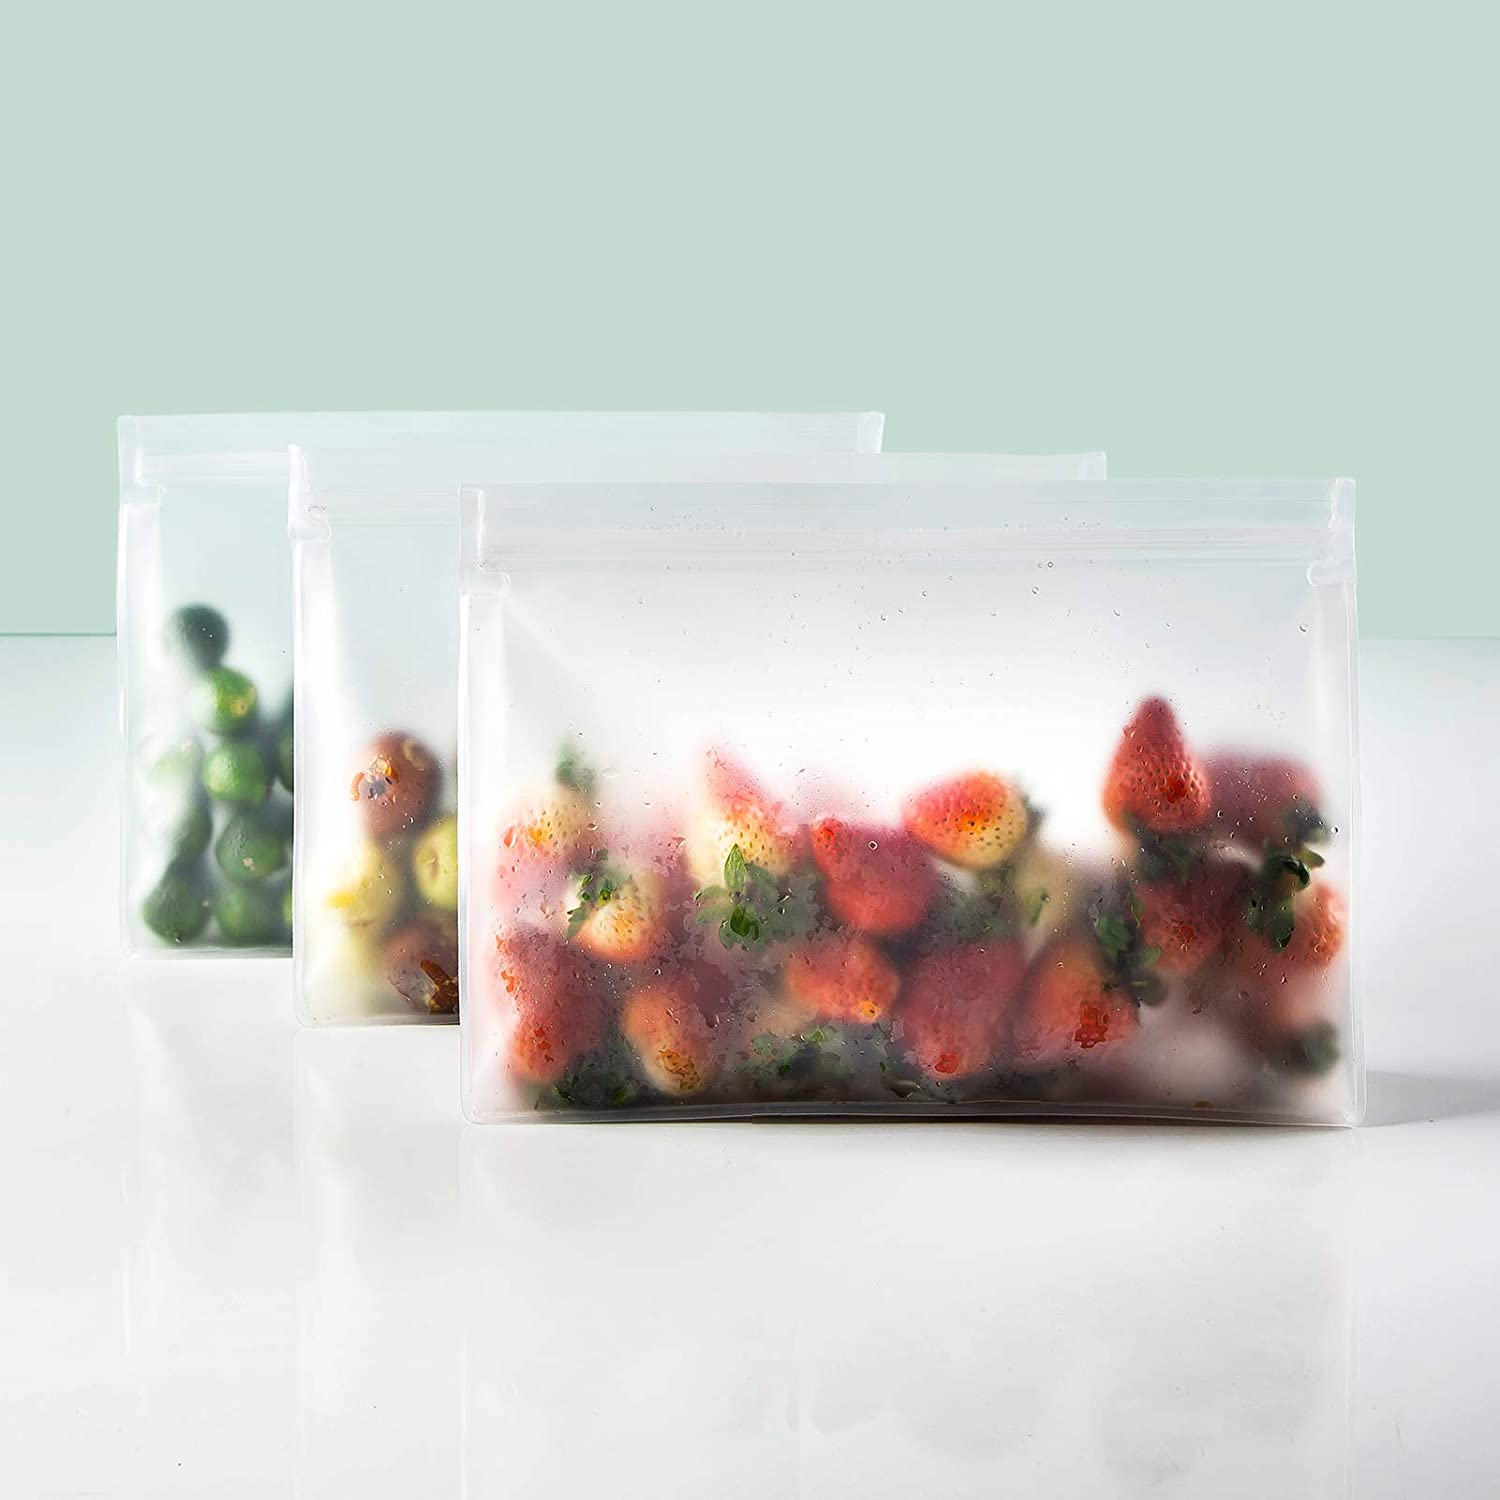 MAXCOOK Reusable Storage Bag, Sandwich Lunch Bags BPA FREE Thicken Leak Proof Reusable Food Bags, Freezer Bags, and Plastic Free Ziplock Lunch Bags for Food Marinate Meat Fruit Cereal, Medium Size